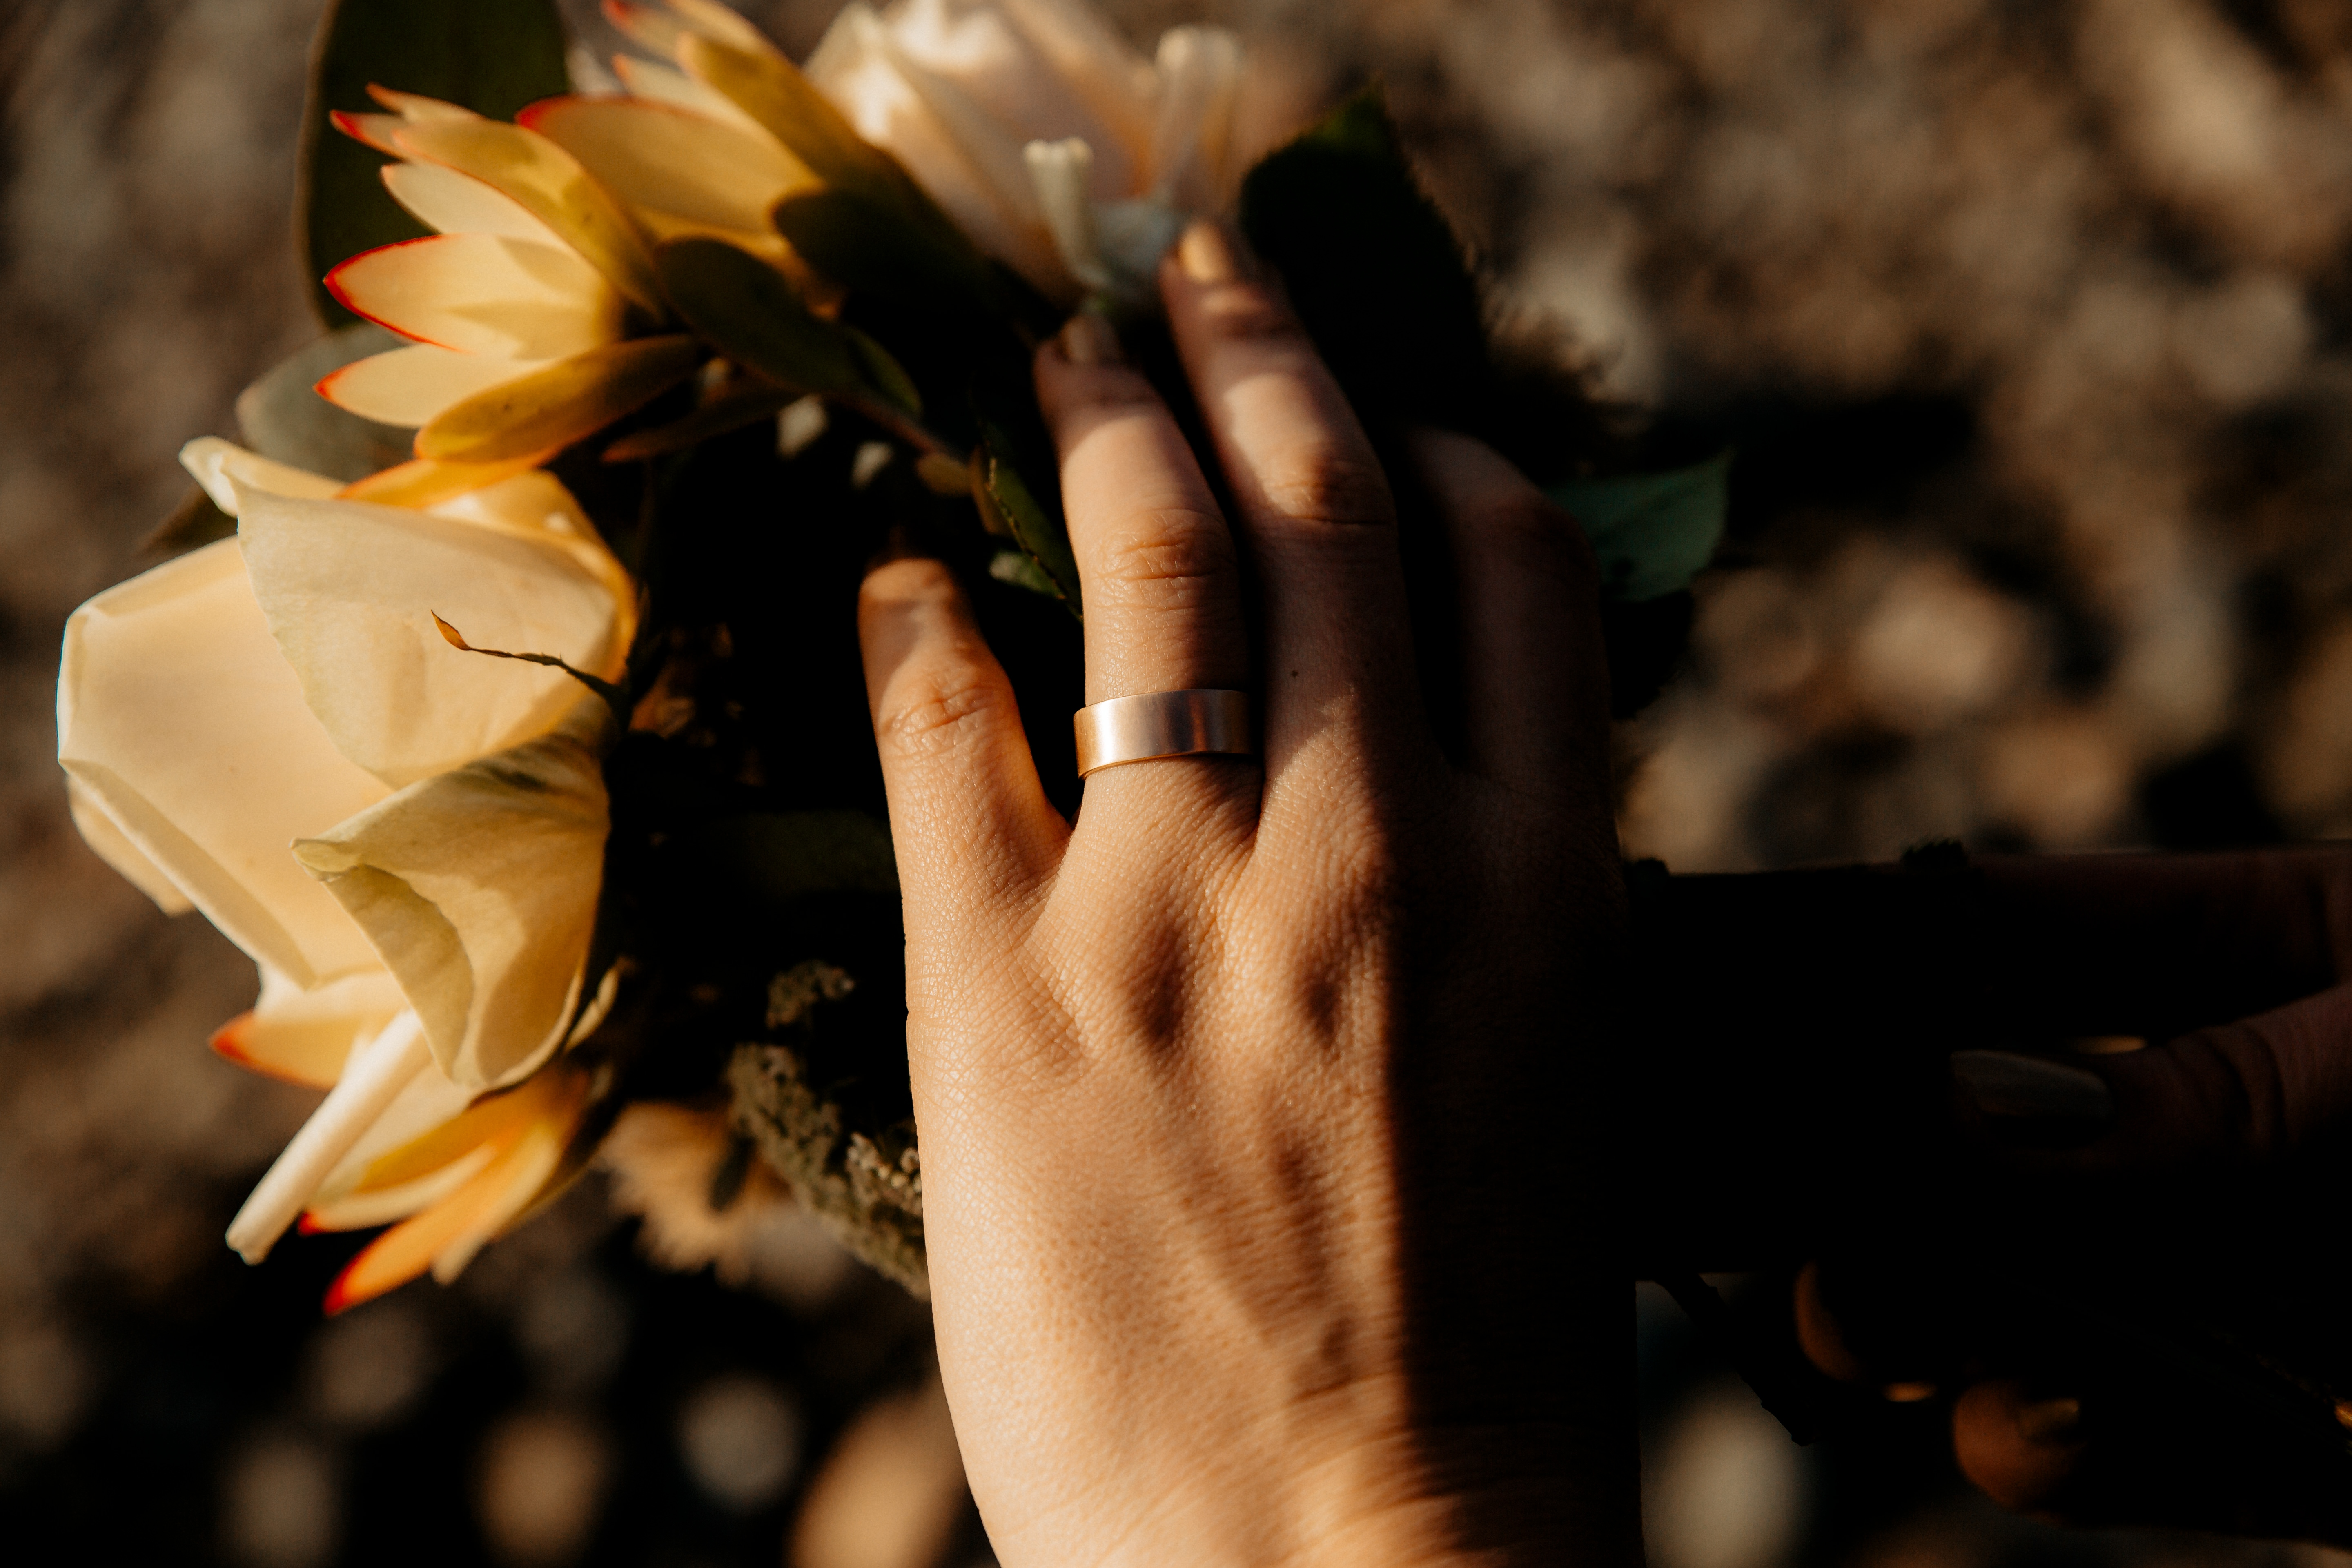 Closeup of a hand lightly touching a flower, wearing a Good Gold wedding band